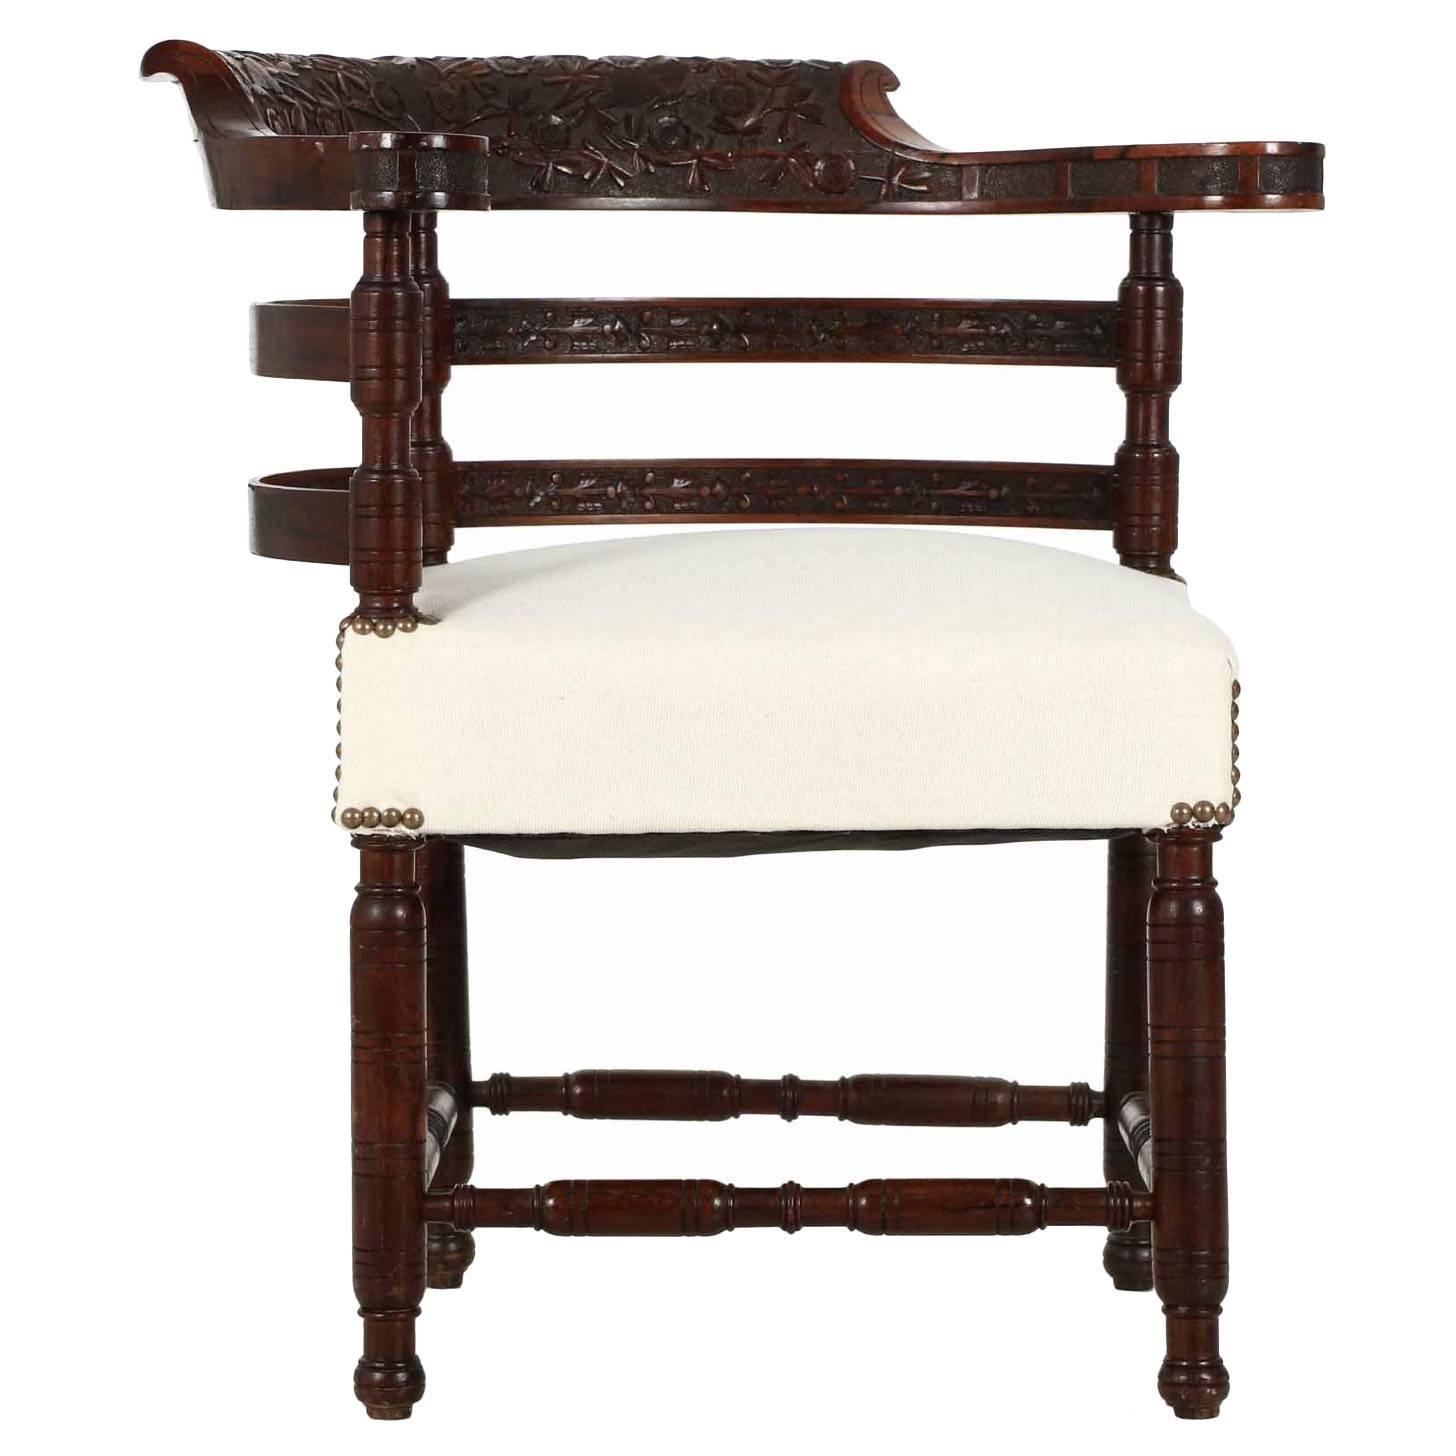 Antique corner chairs - Aesthetic Movement Carved Rosewood Corner Chair Circa 1880